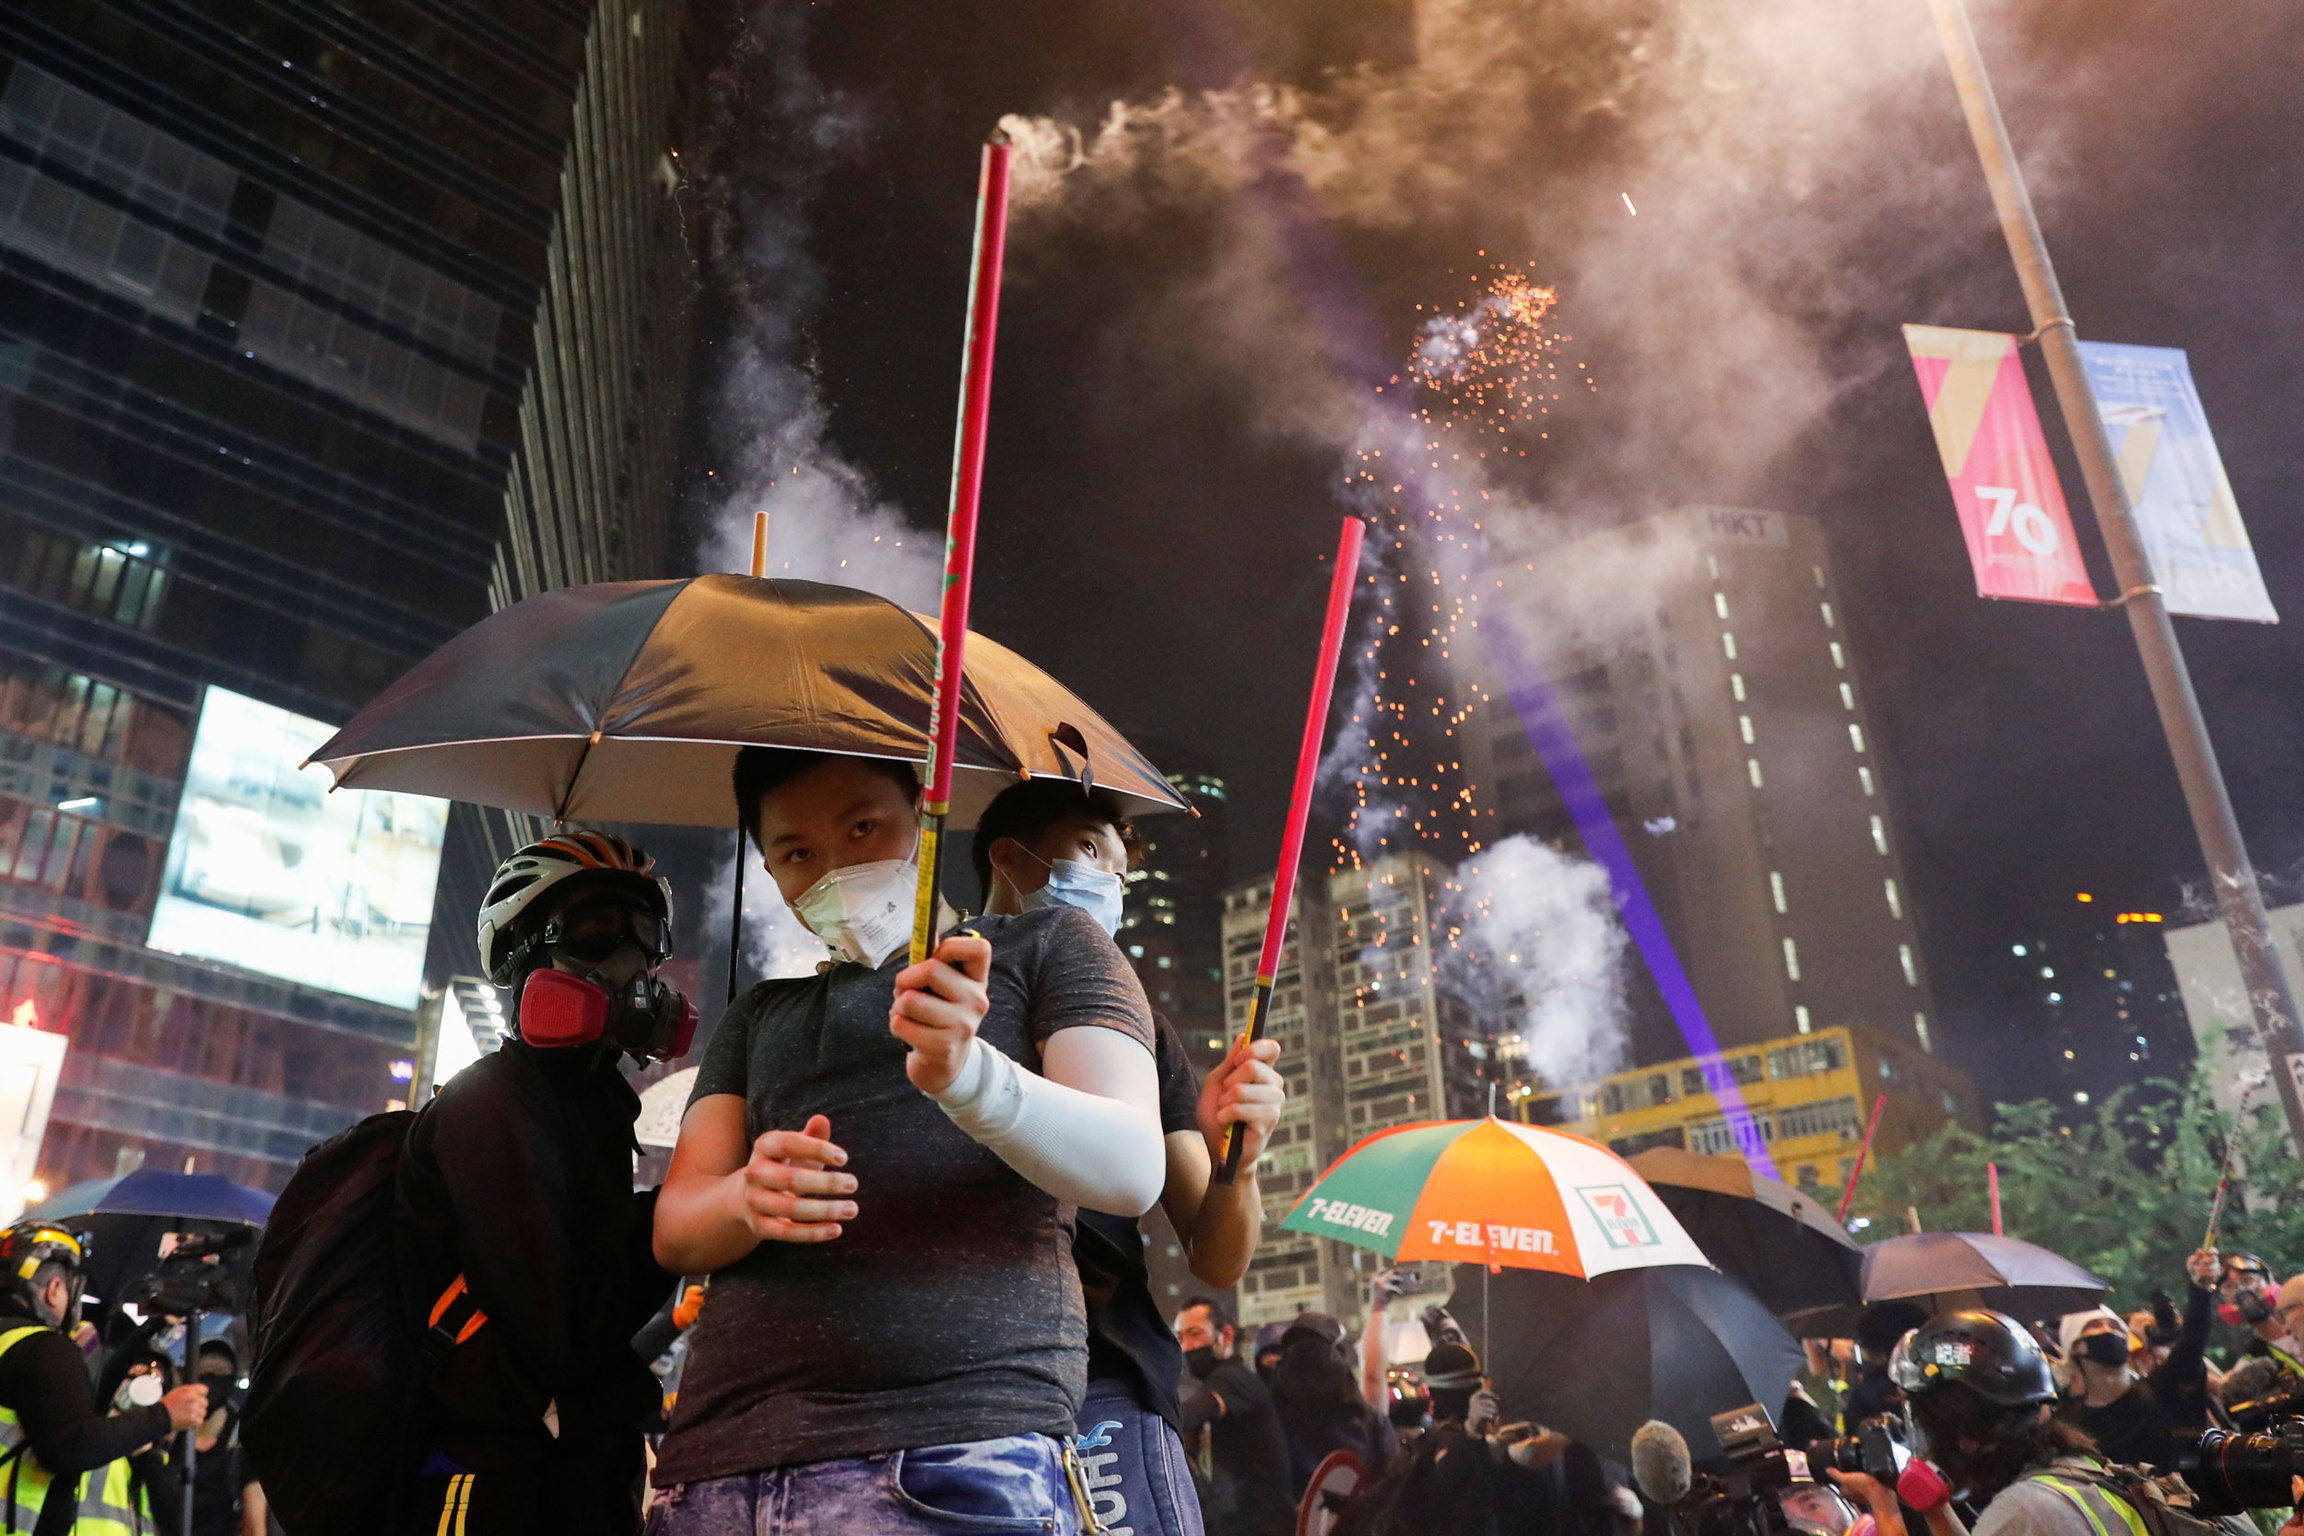 A group of protesters are shown with umbrellas and holding fireworks.